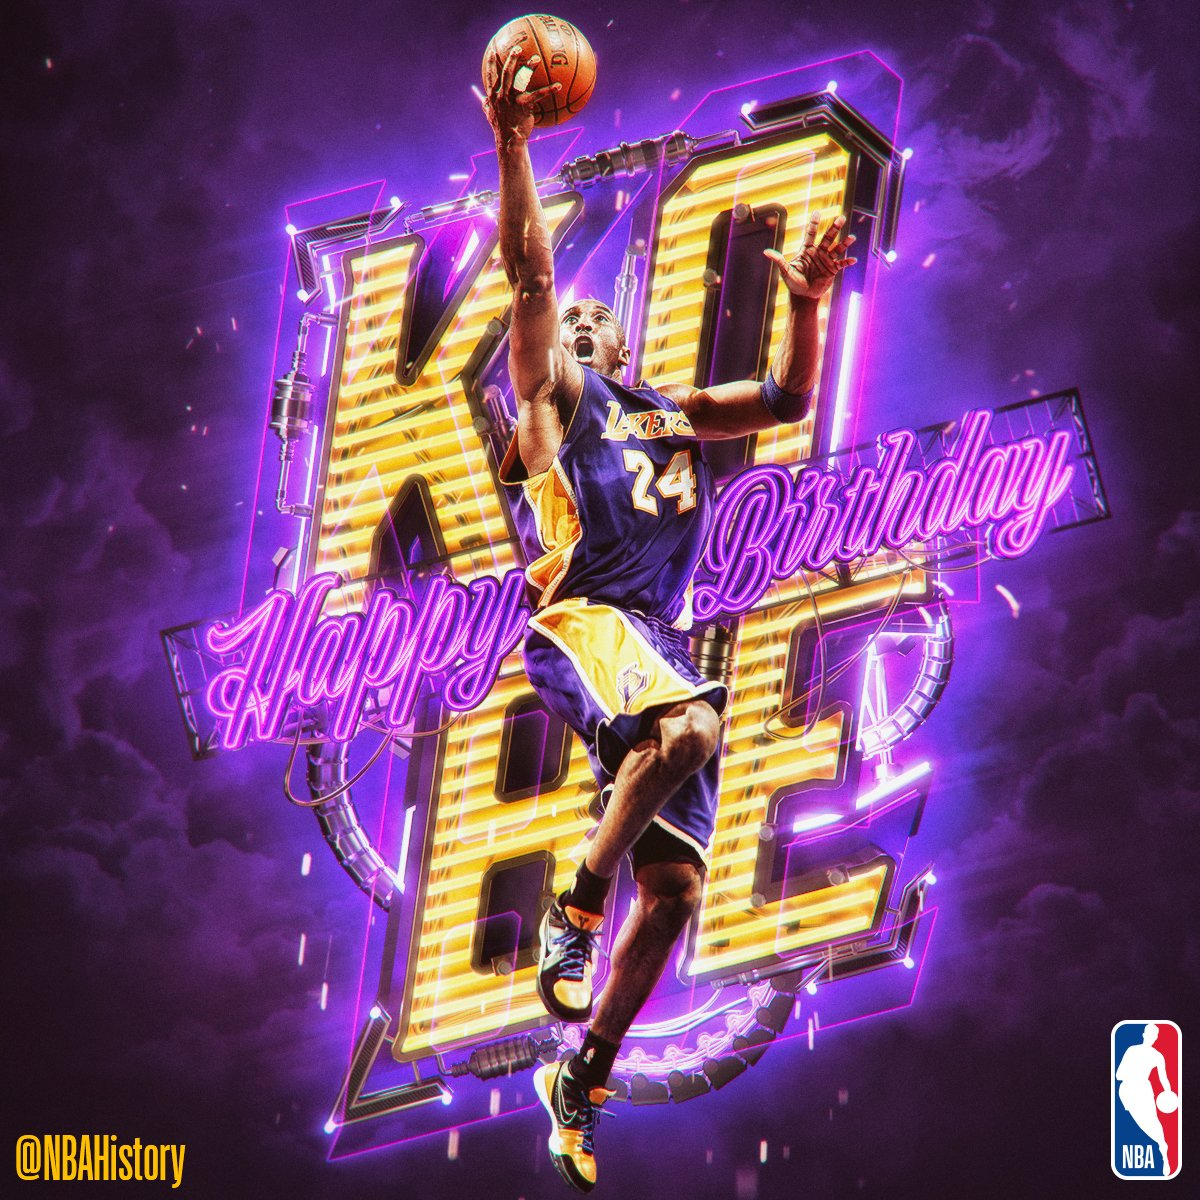 Happy 39th Birthday to 5x champ & @Lakers legend, @kobebryant! #NBABDAY https://t.co/5tiB9yNGcu